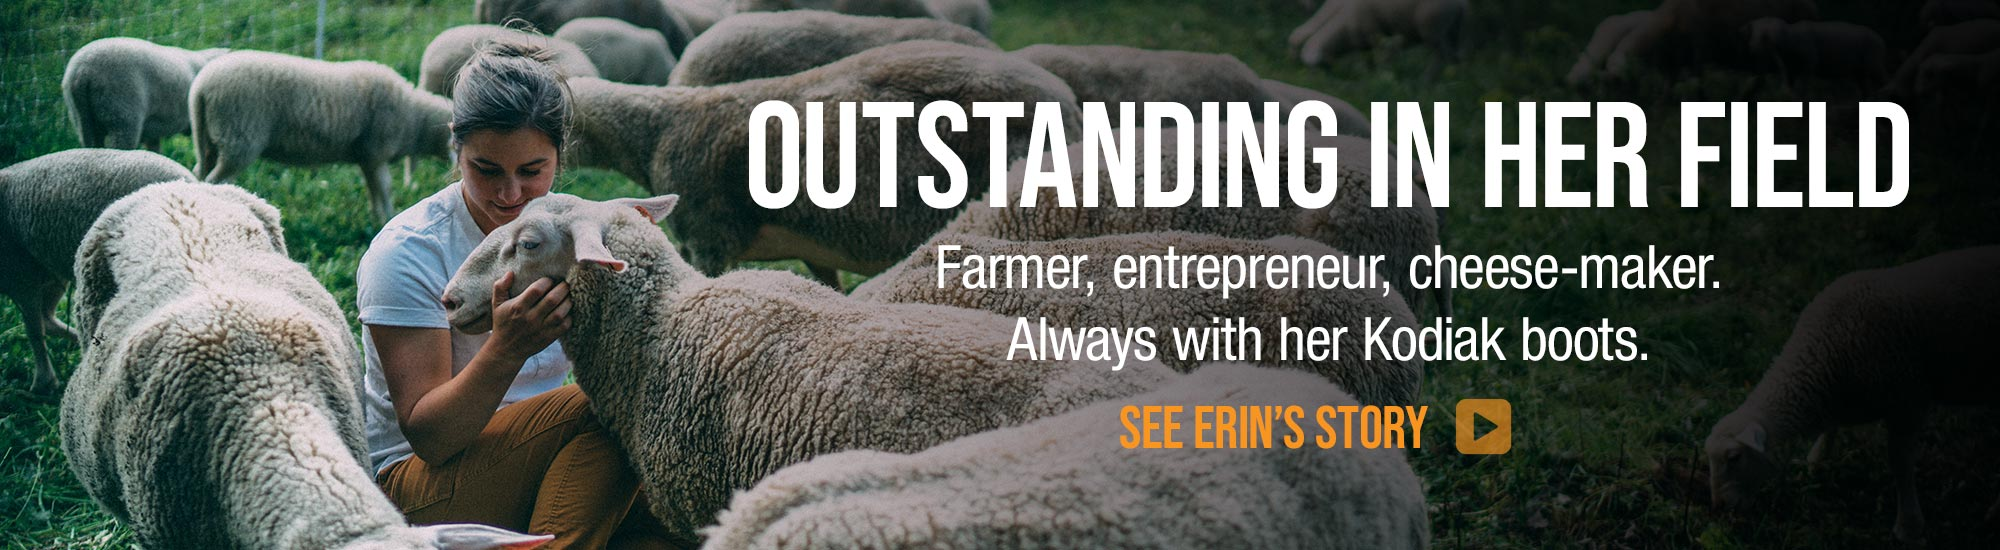 See Erin's Story: A farmer and her Kodiak Boots